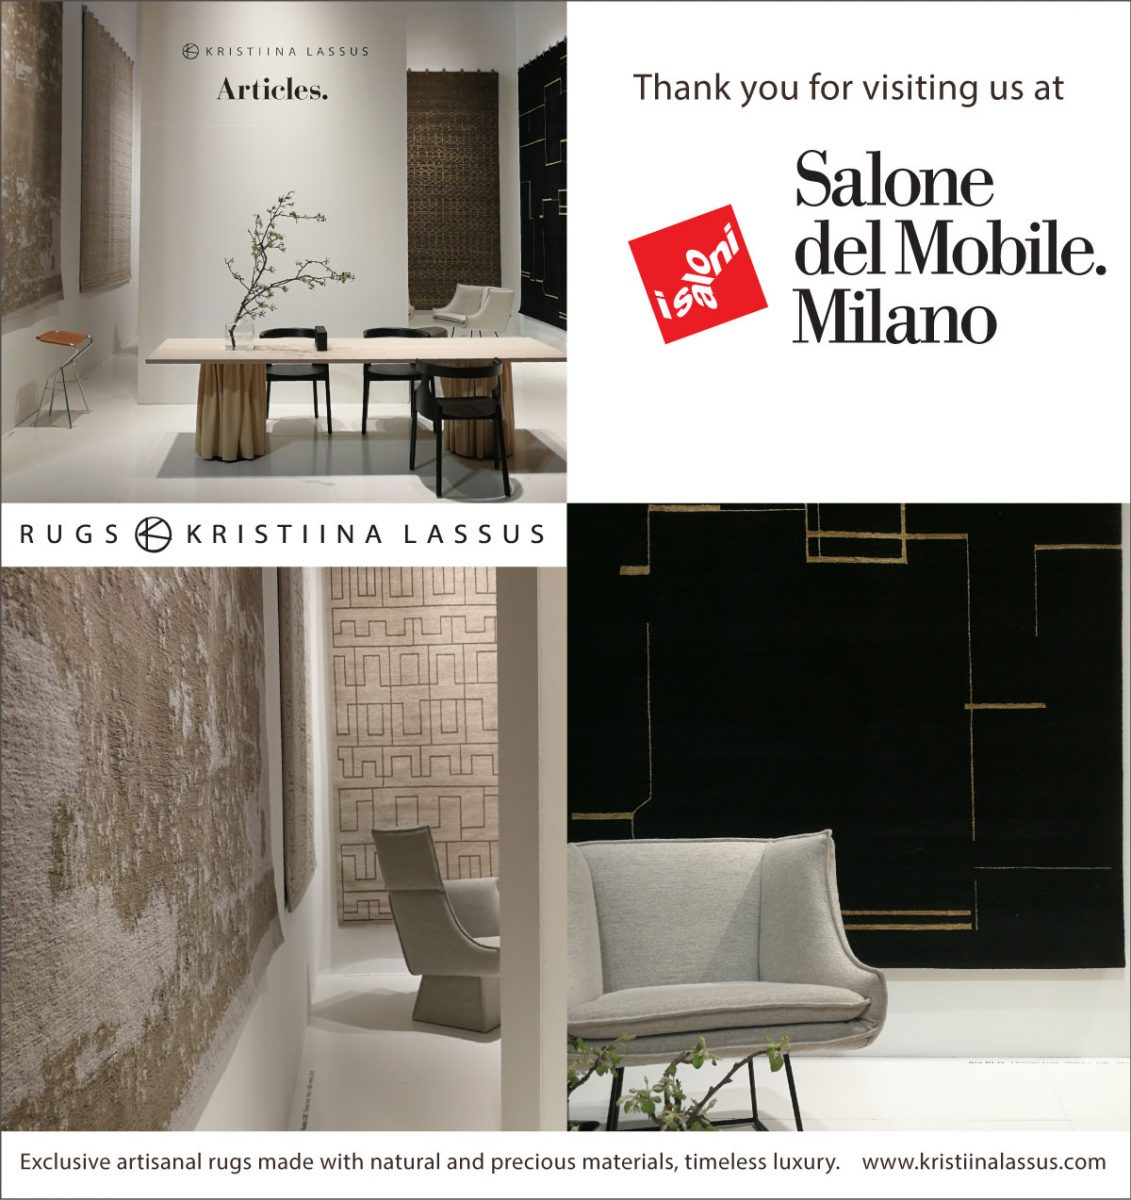 Kristiina-Lassus-_Thank-you-Salone-19_sito_170419sb